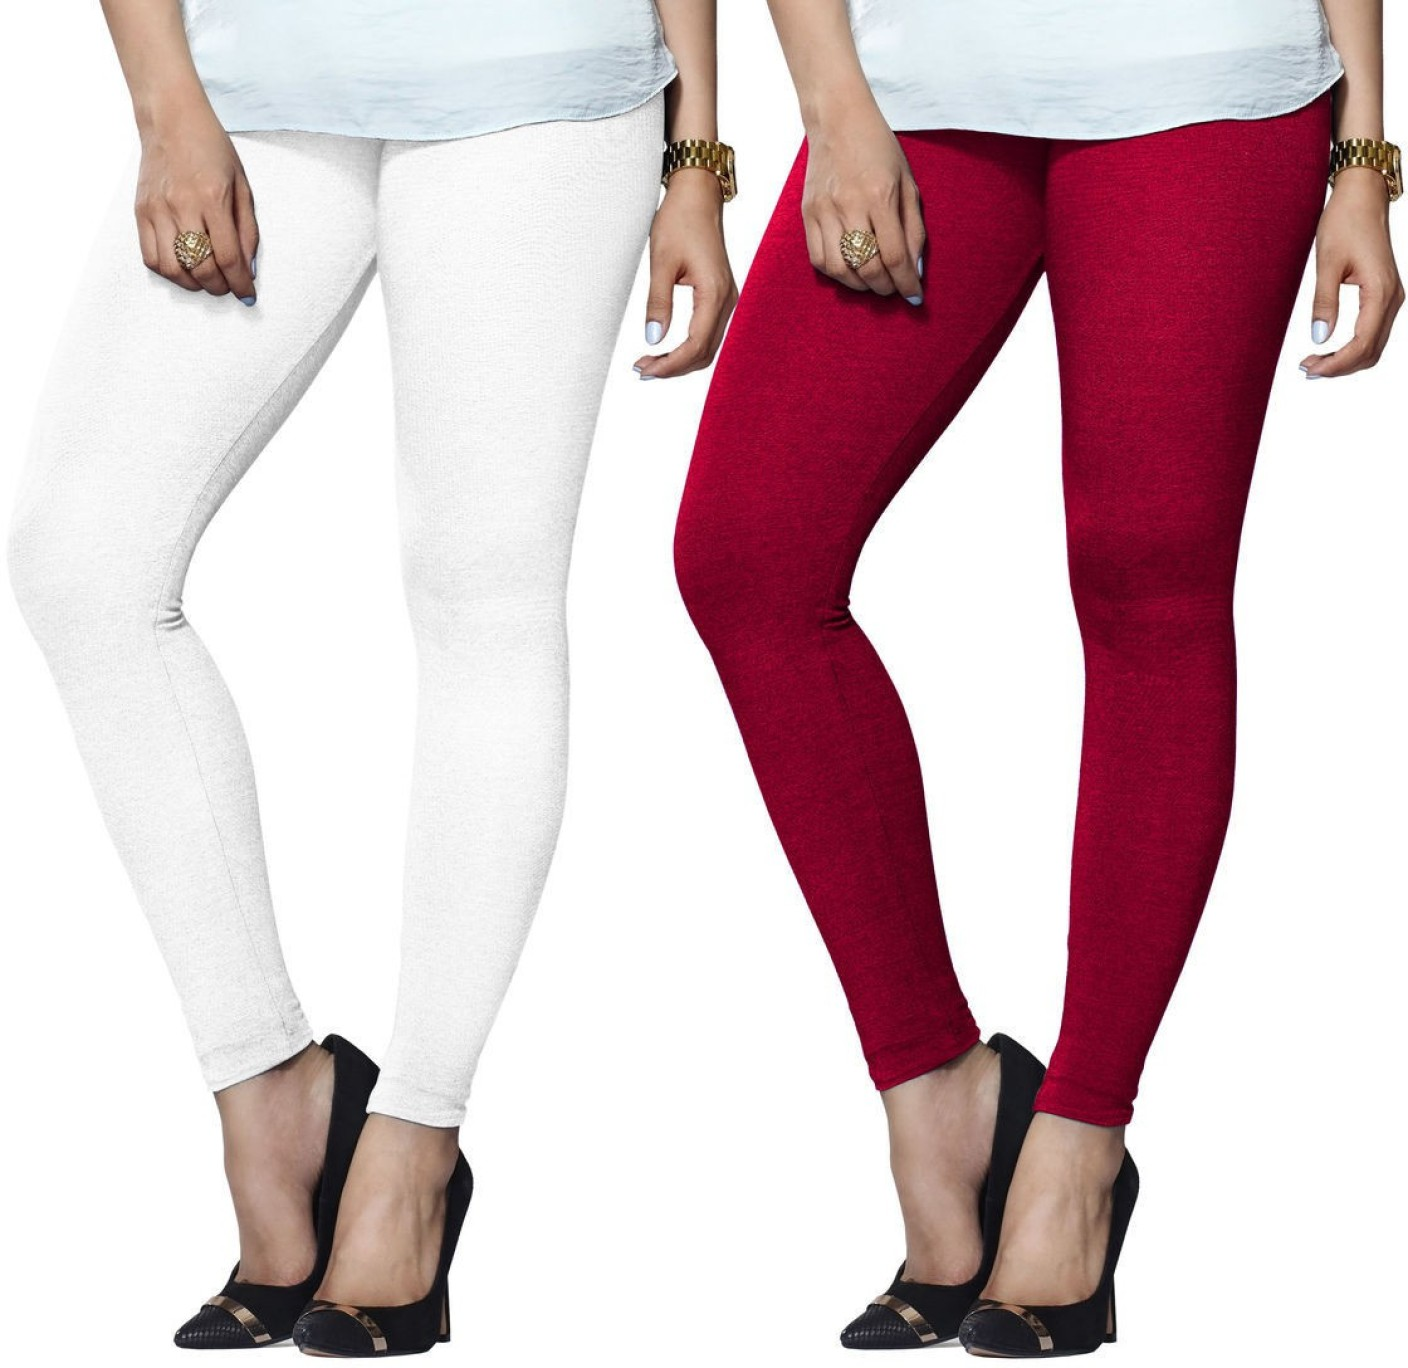 Lux Lyra Legging Price in India - Buy Lux Lyra Legging online at Flipkart.com